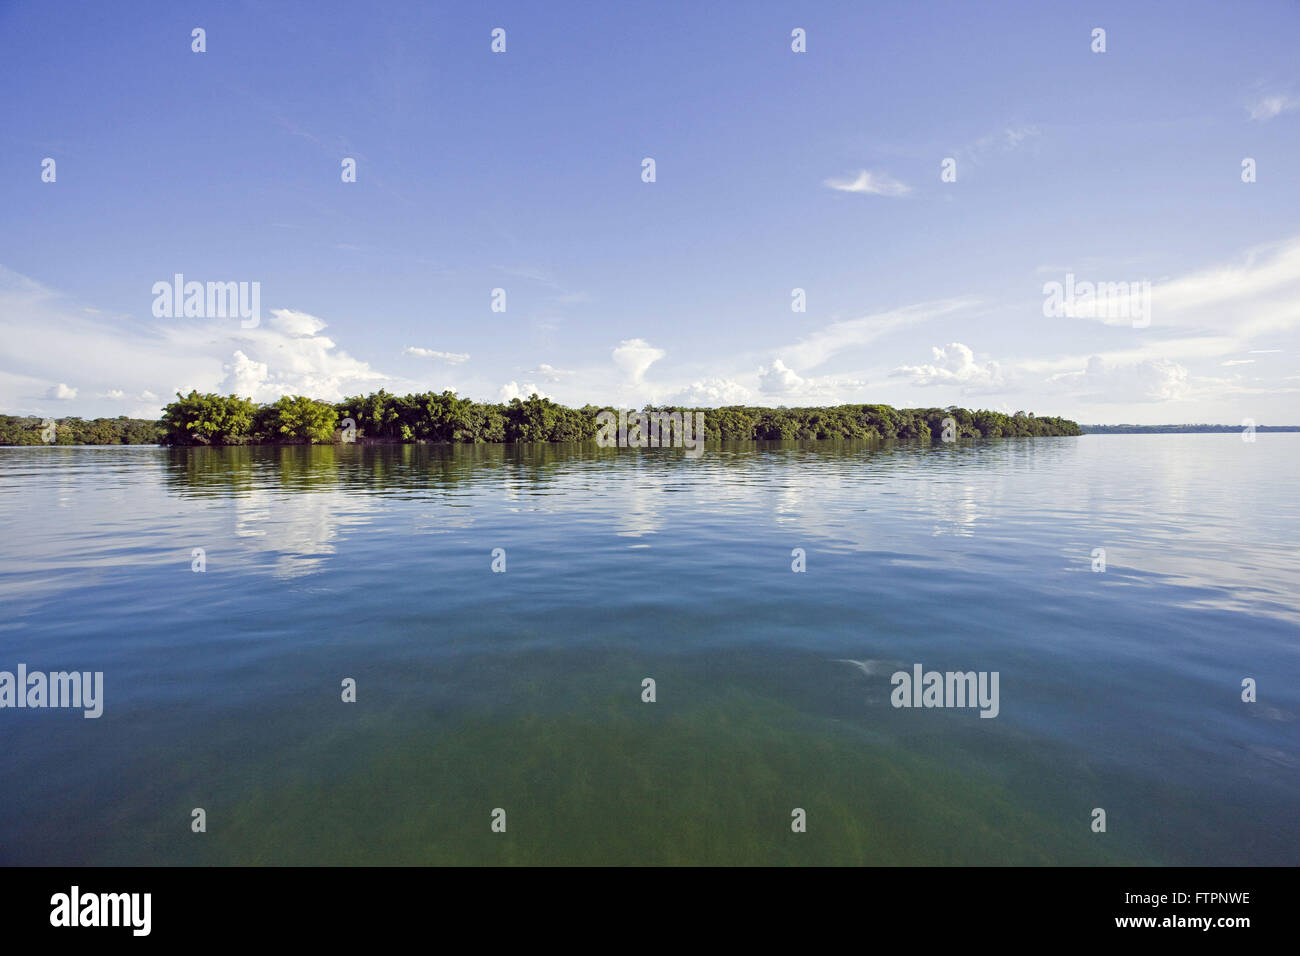 Island in the Parana River - Stock Image